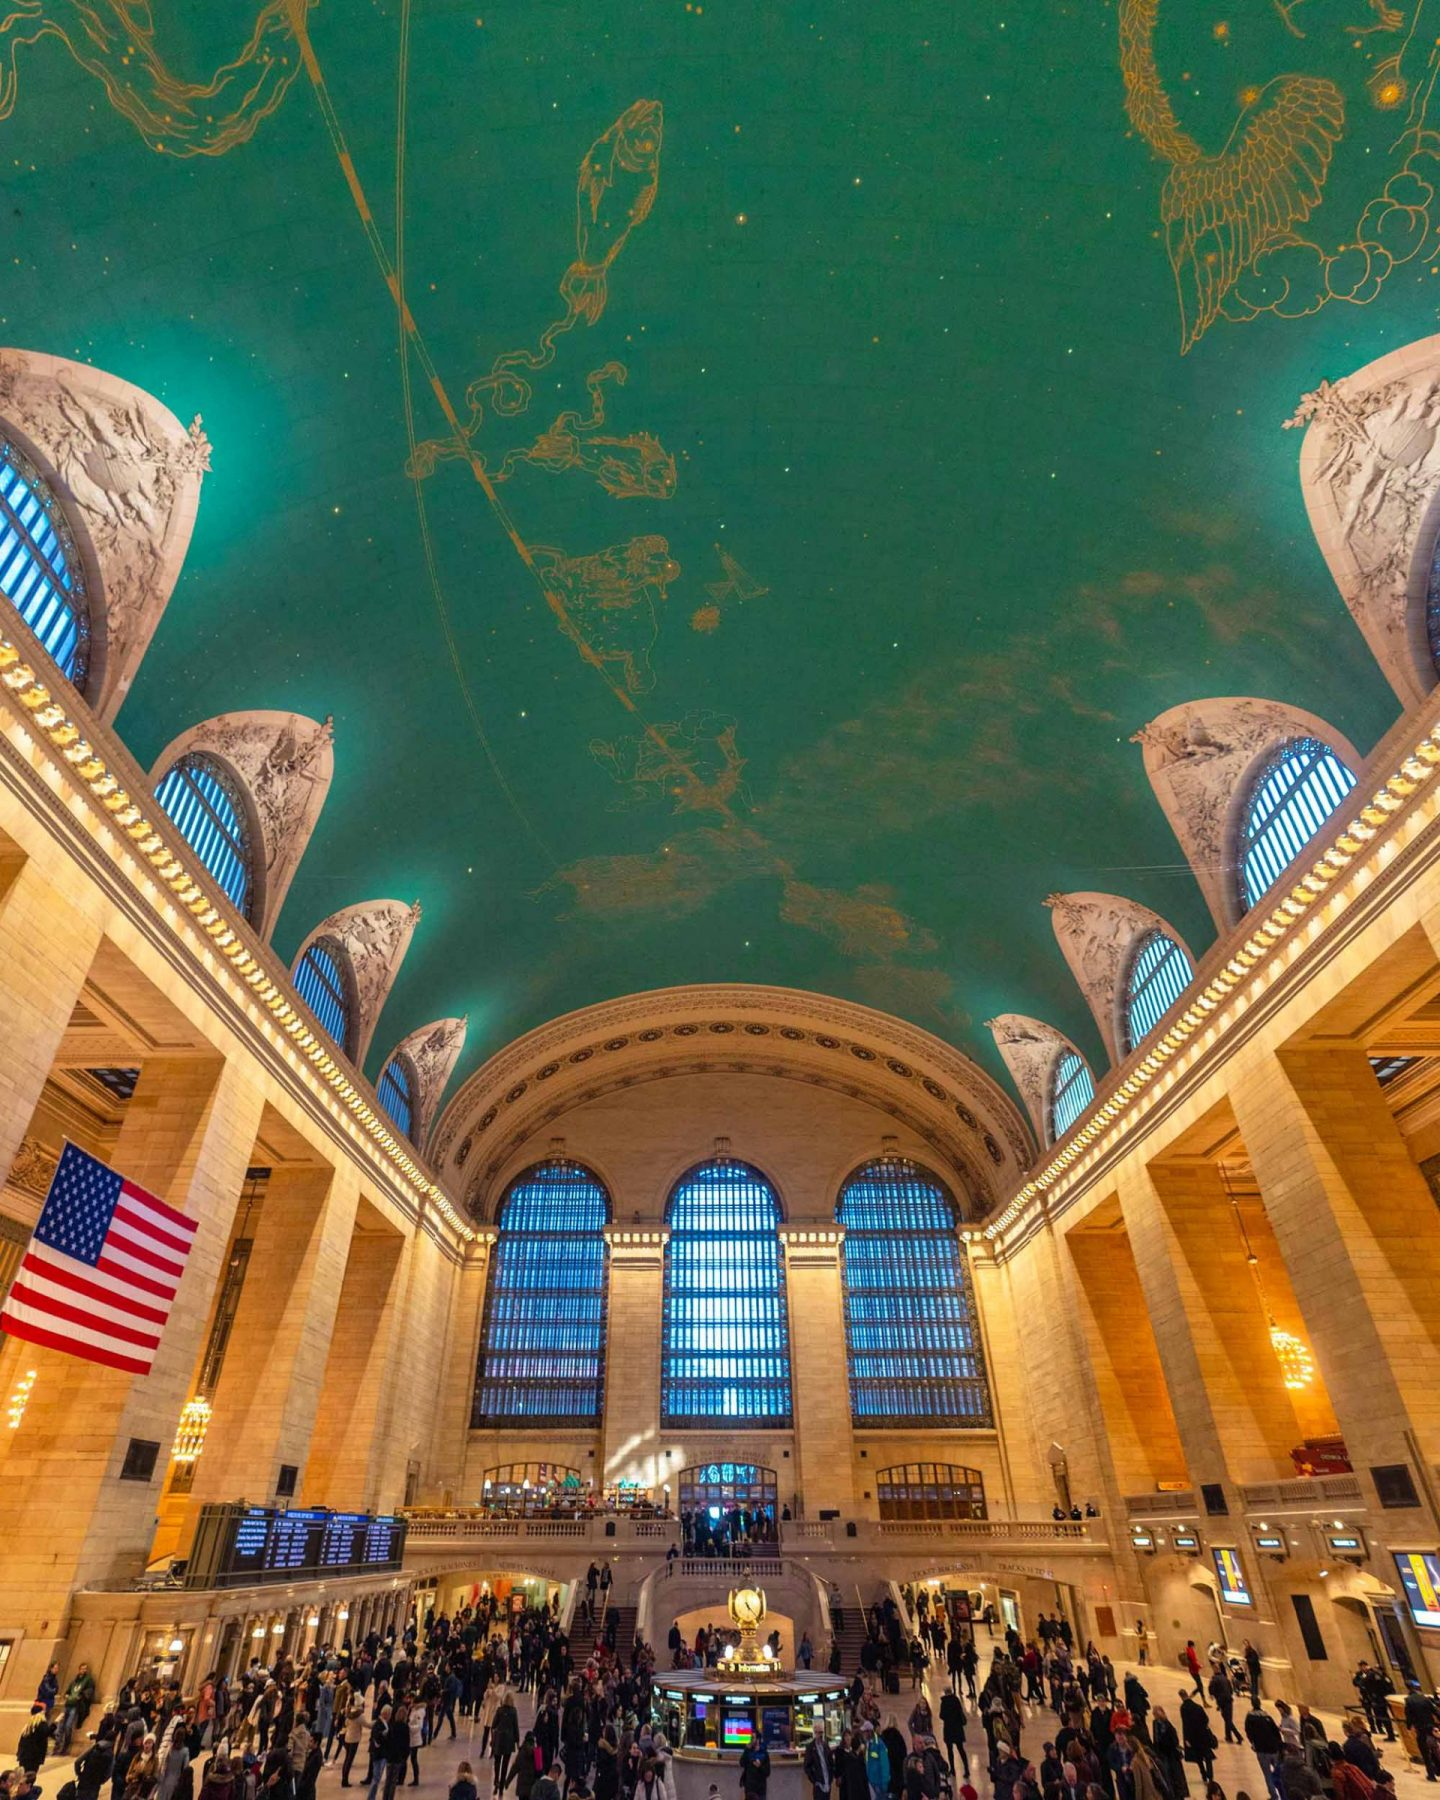 Celestial ceiling at Grand Central Station.